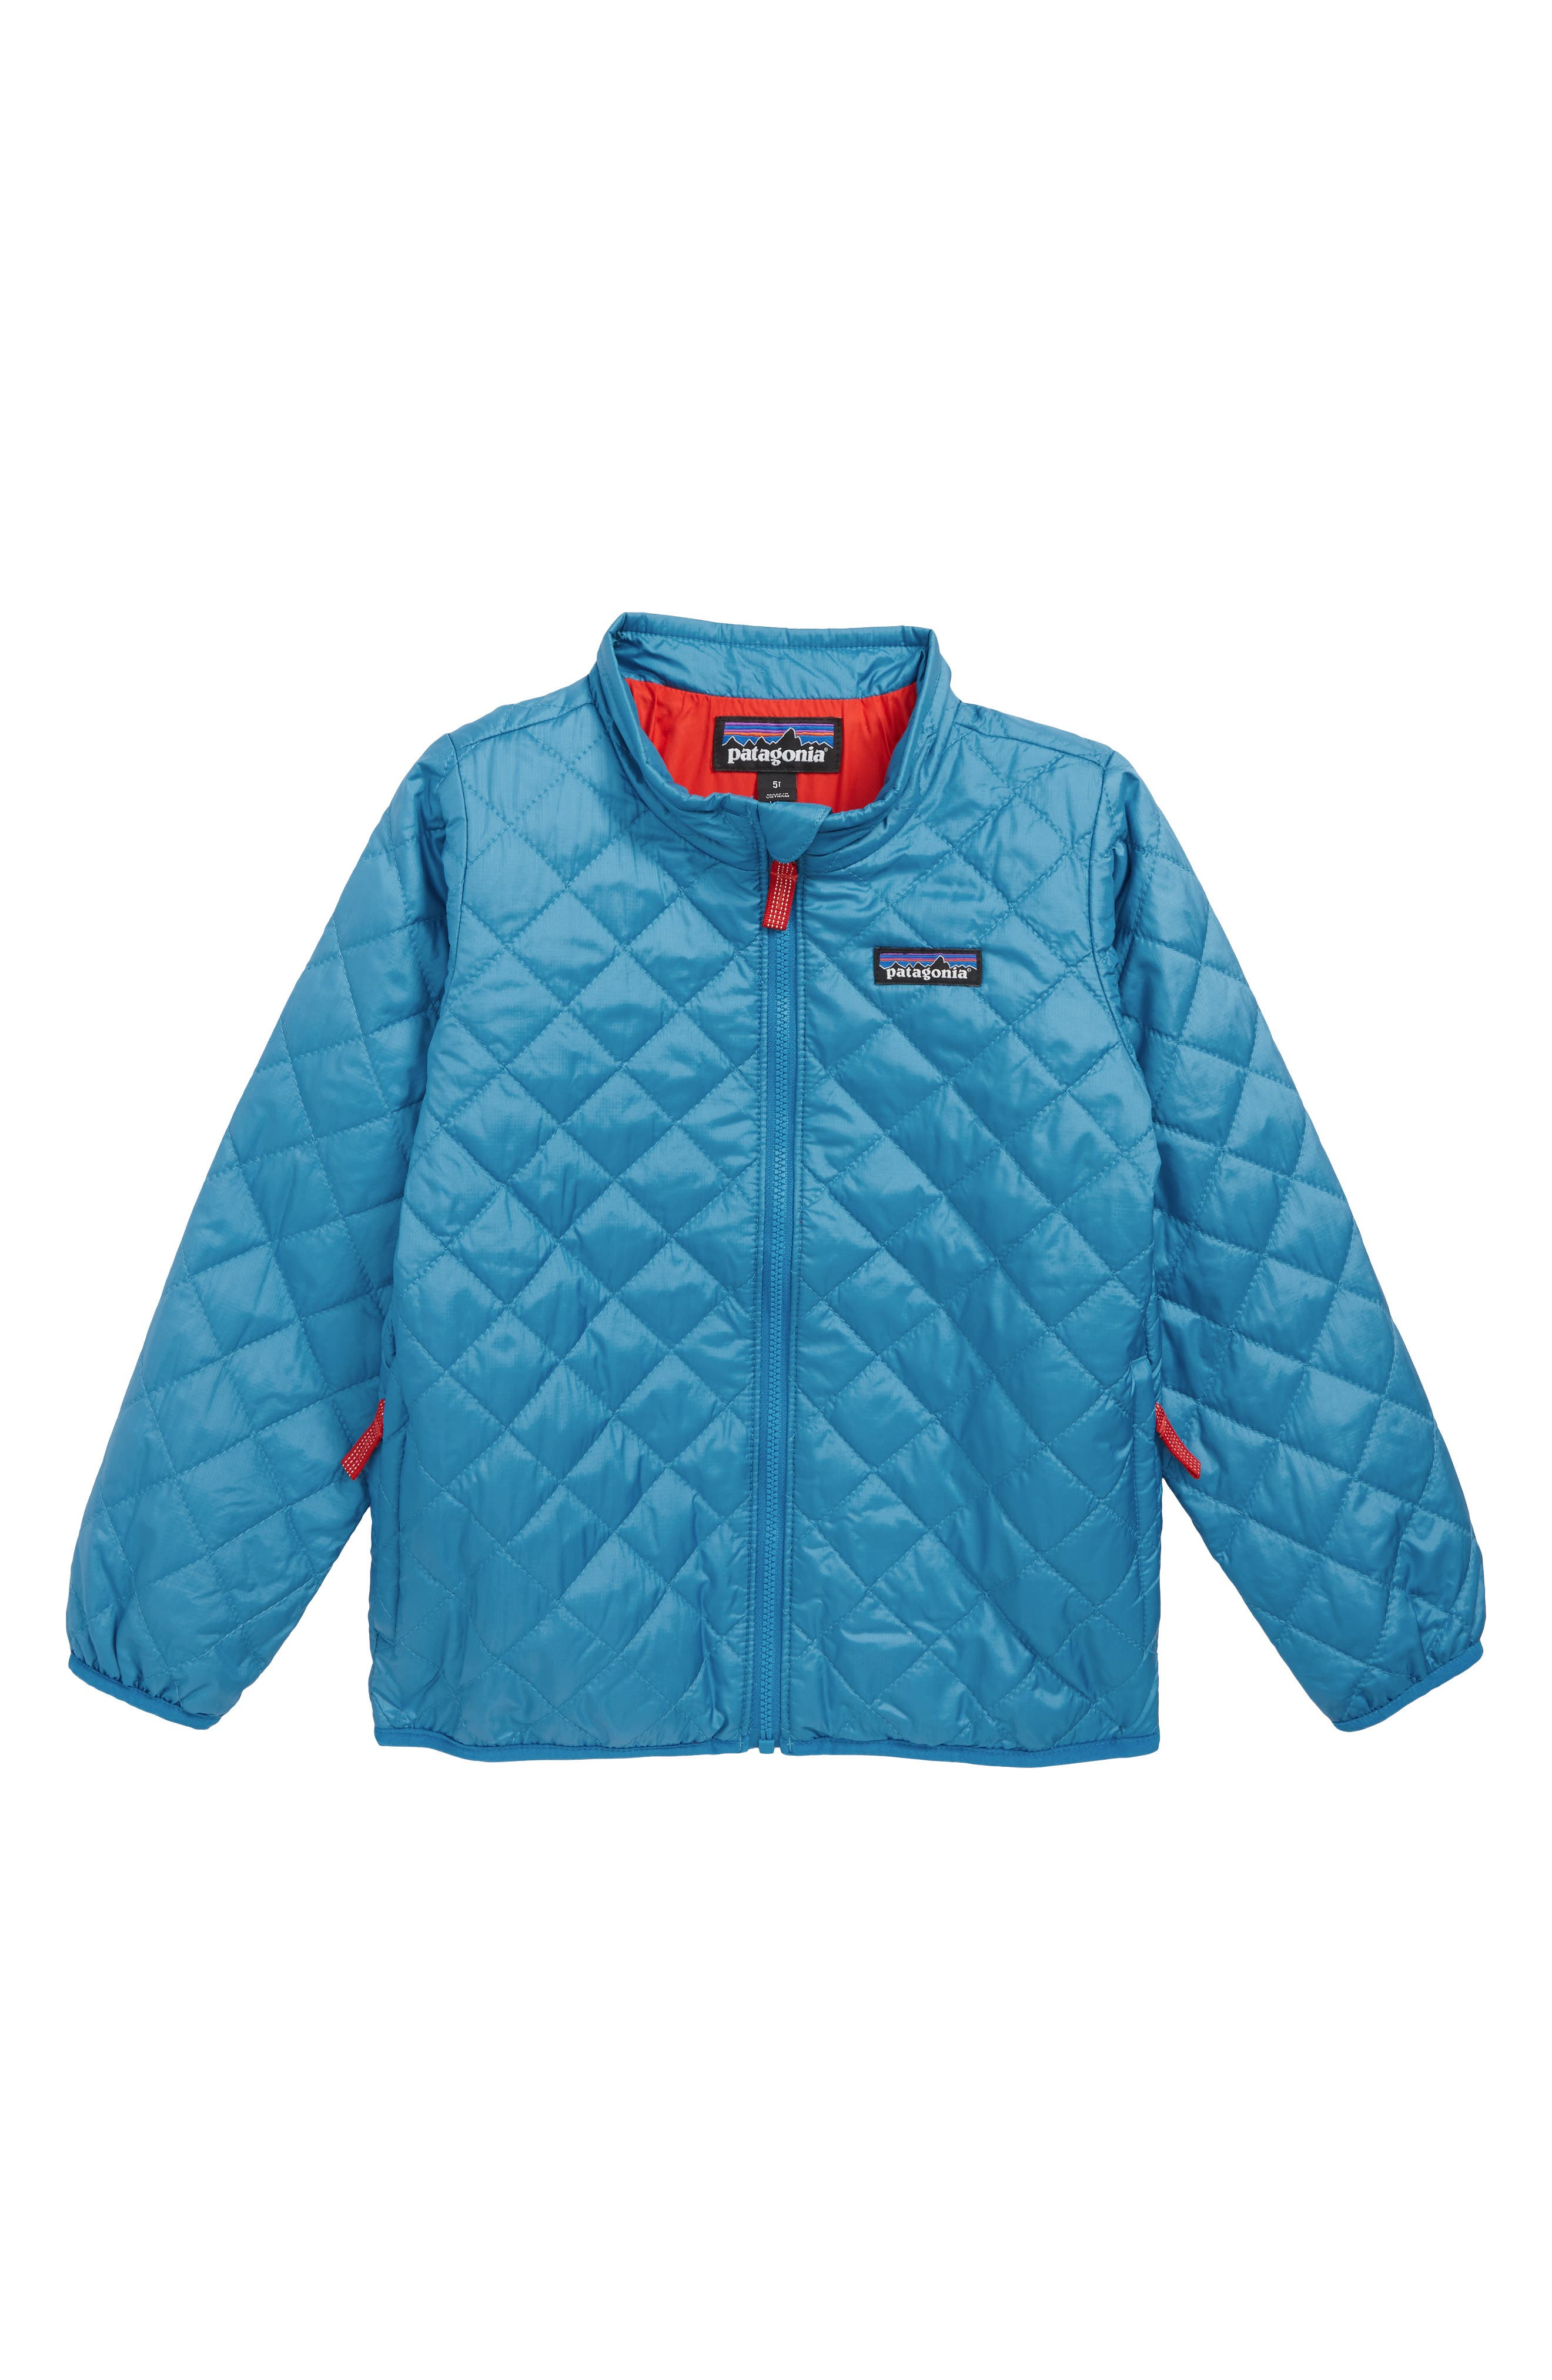 Toddler Boys Patagonia Nano Puff Quilted Water Resistant Jacket Size 4T  Blue